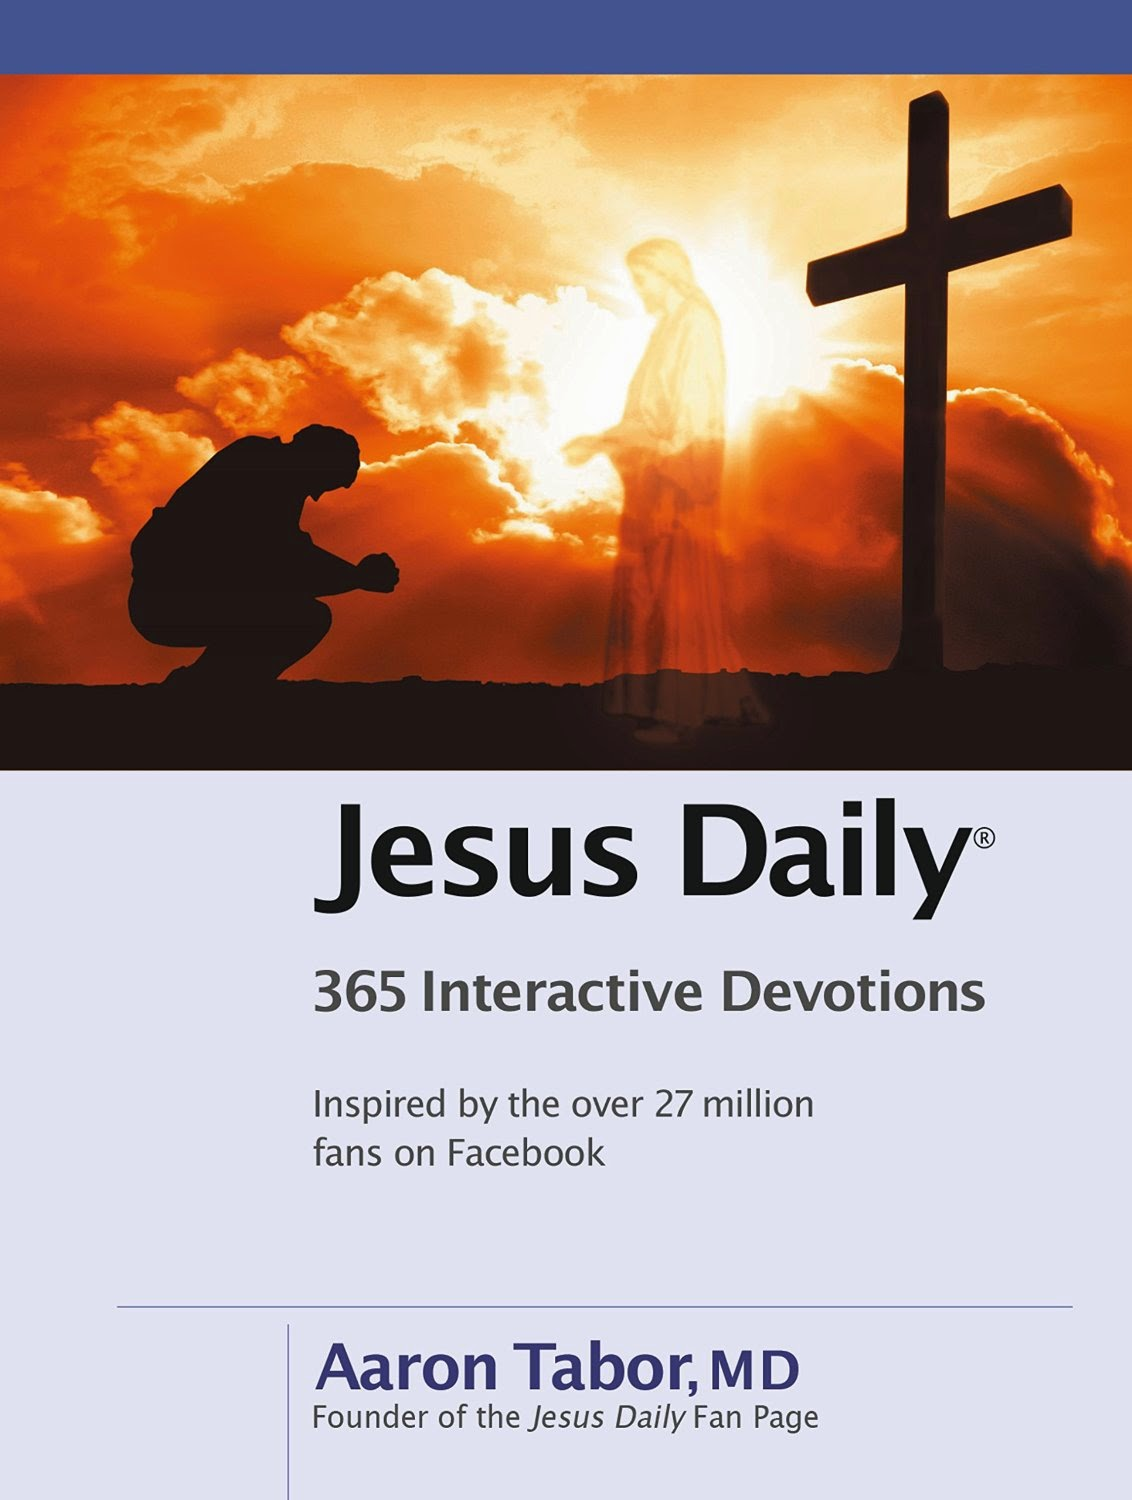 Jesus Daily Giveaway